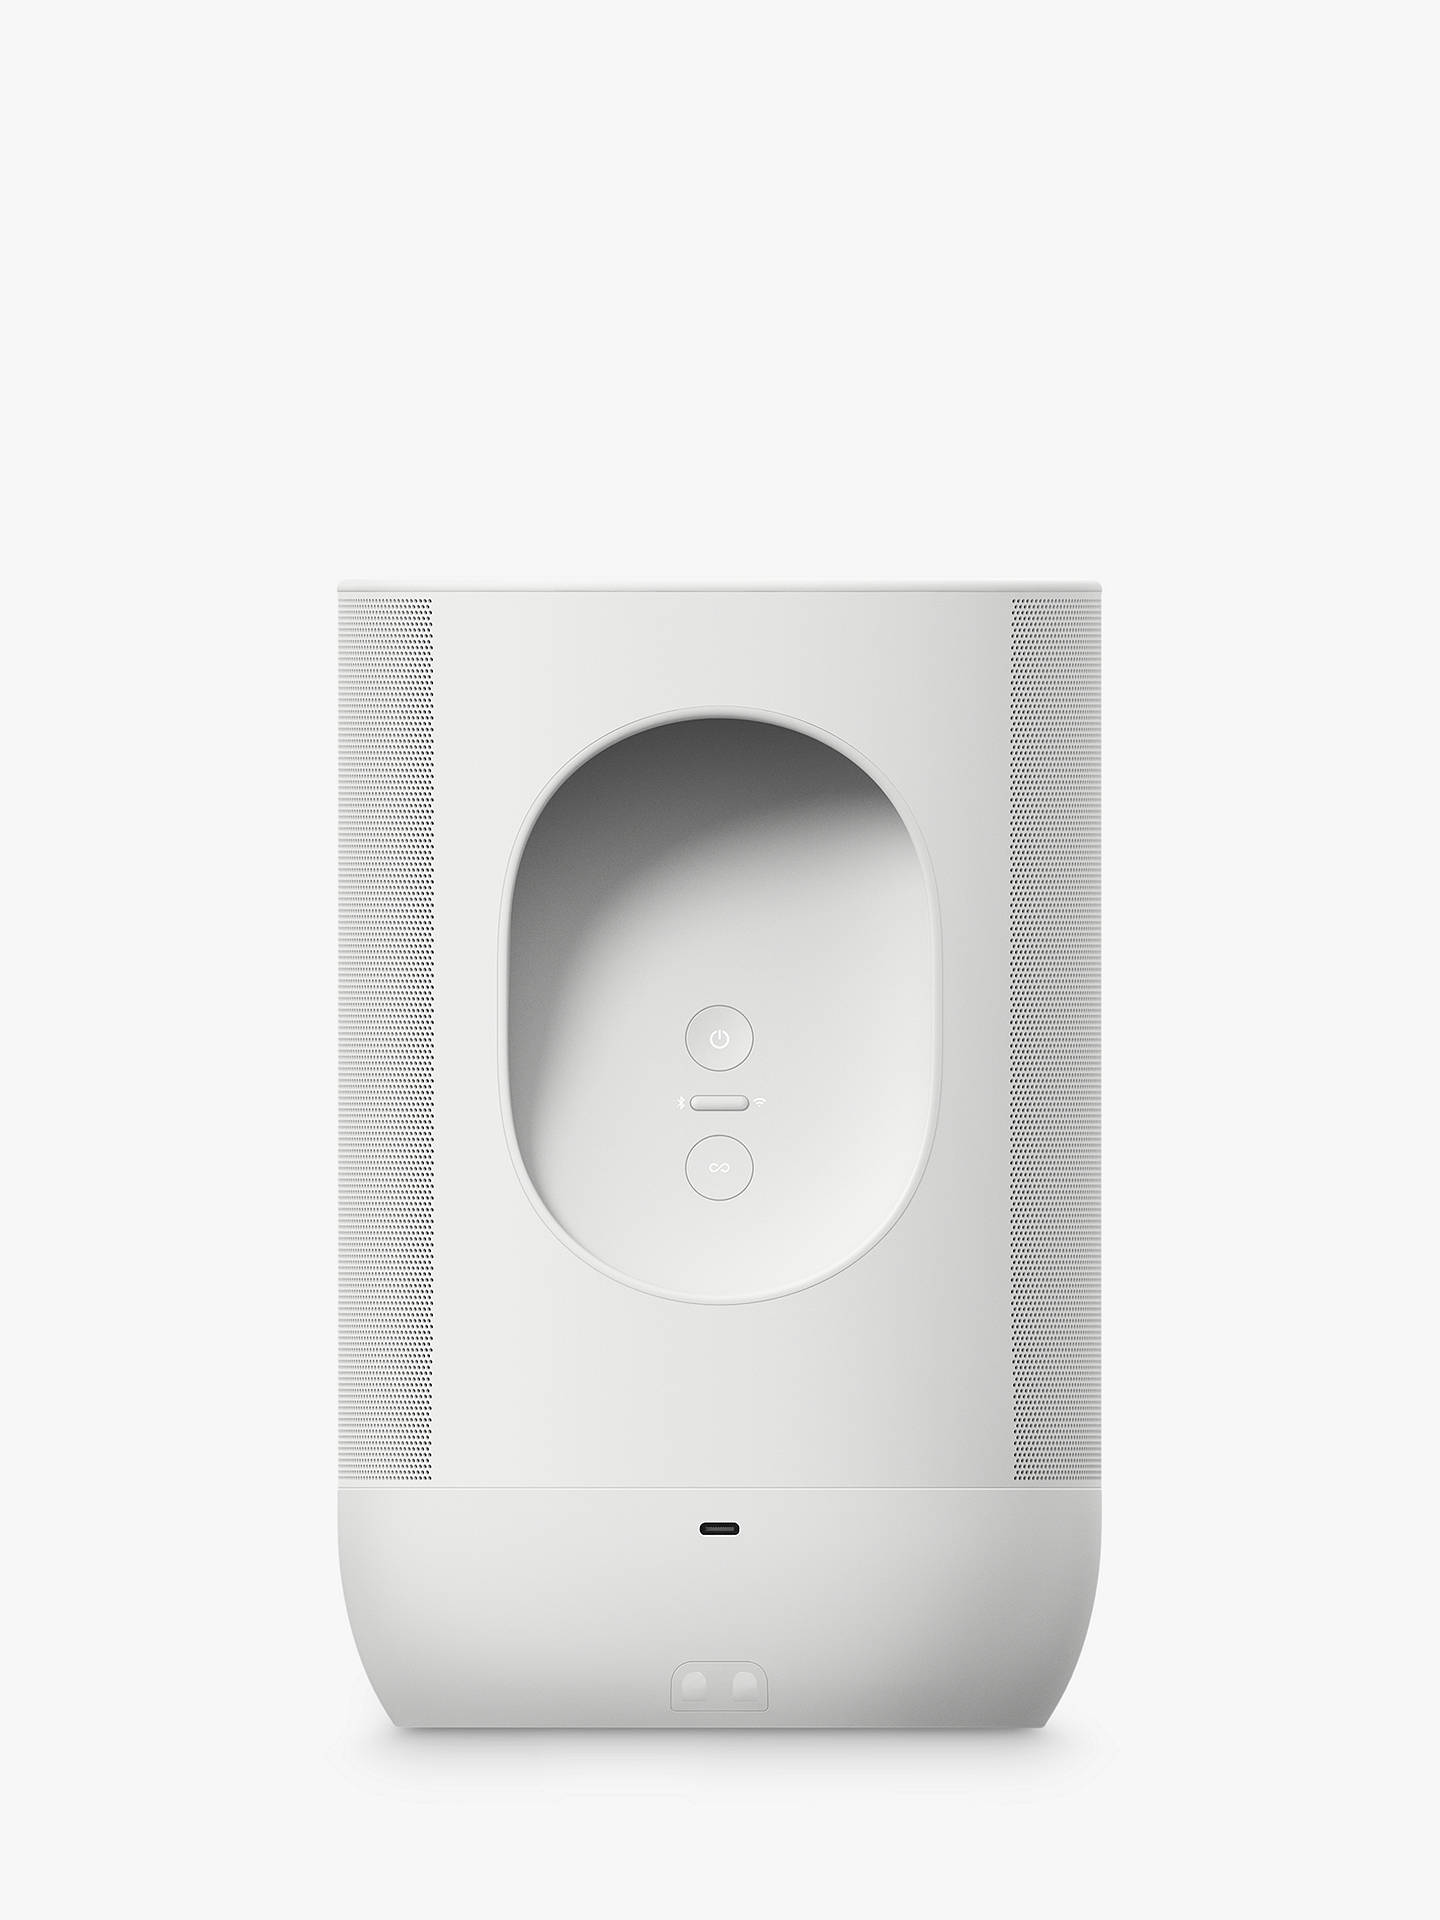 Buy Sonos Move Smart Speaker with Voice Control, Lunar White Online at johnlewis.com